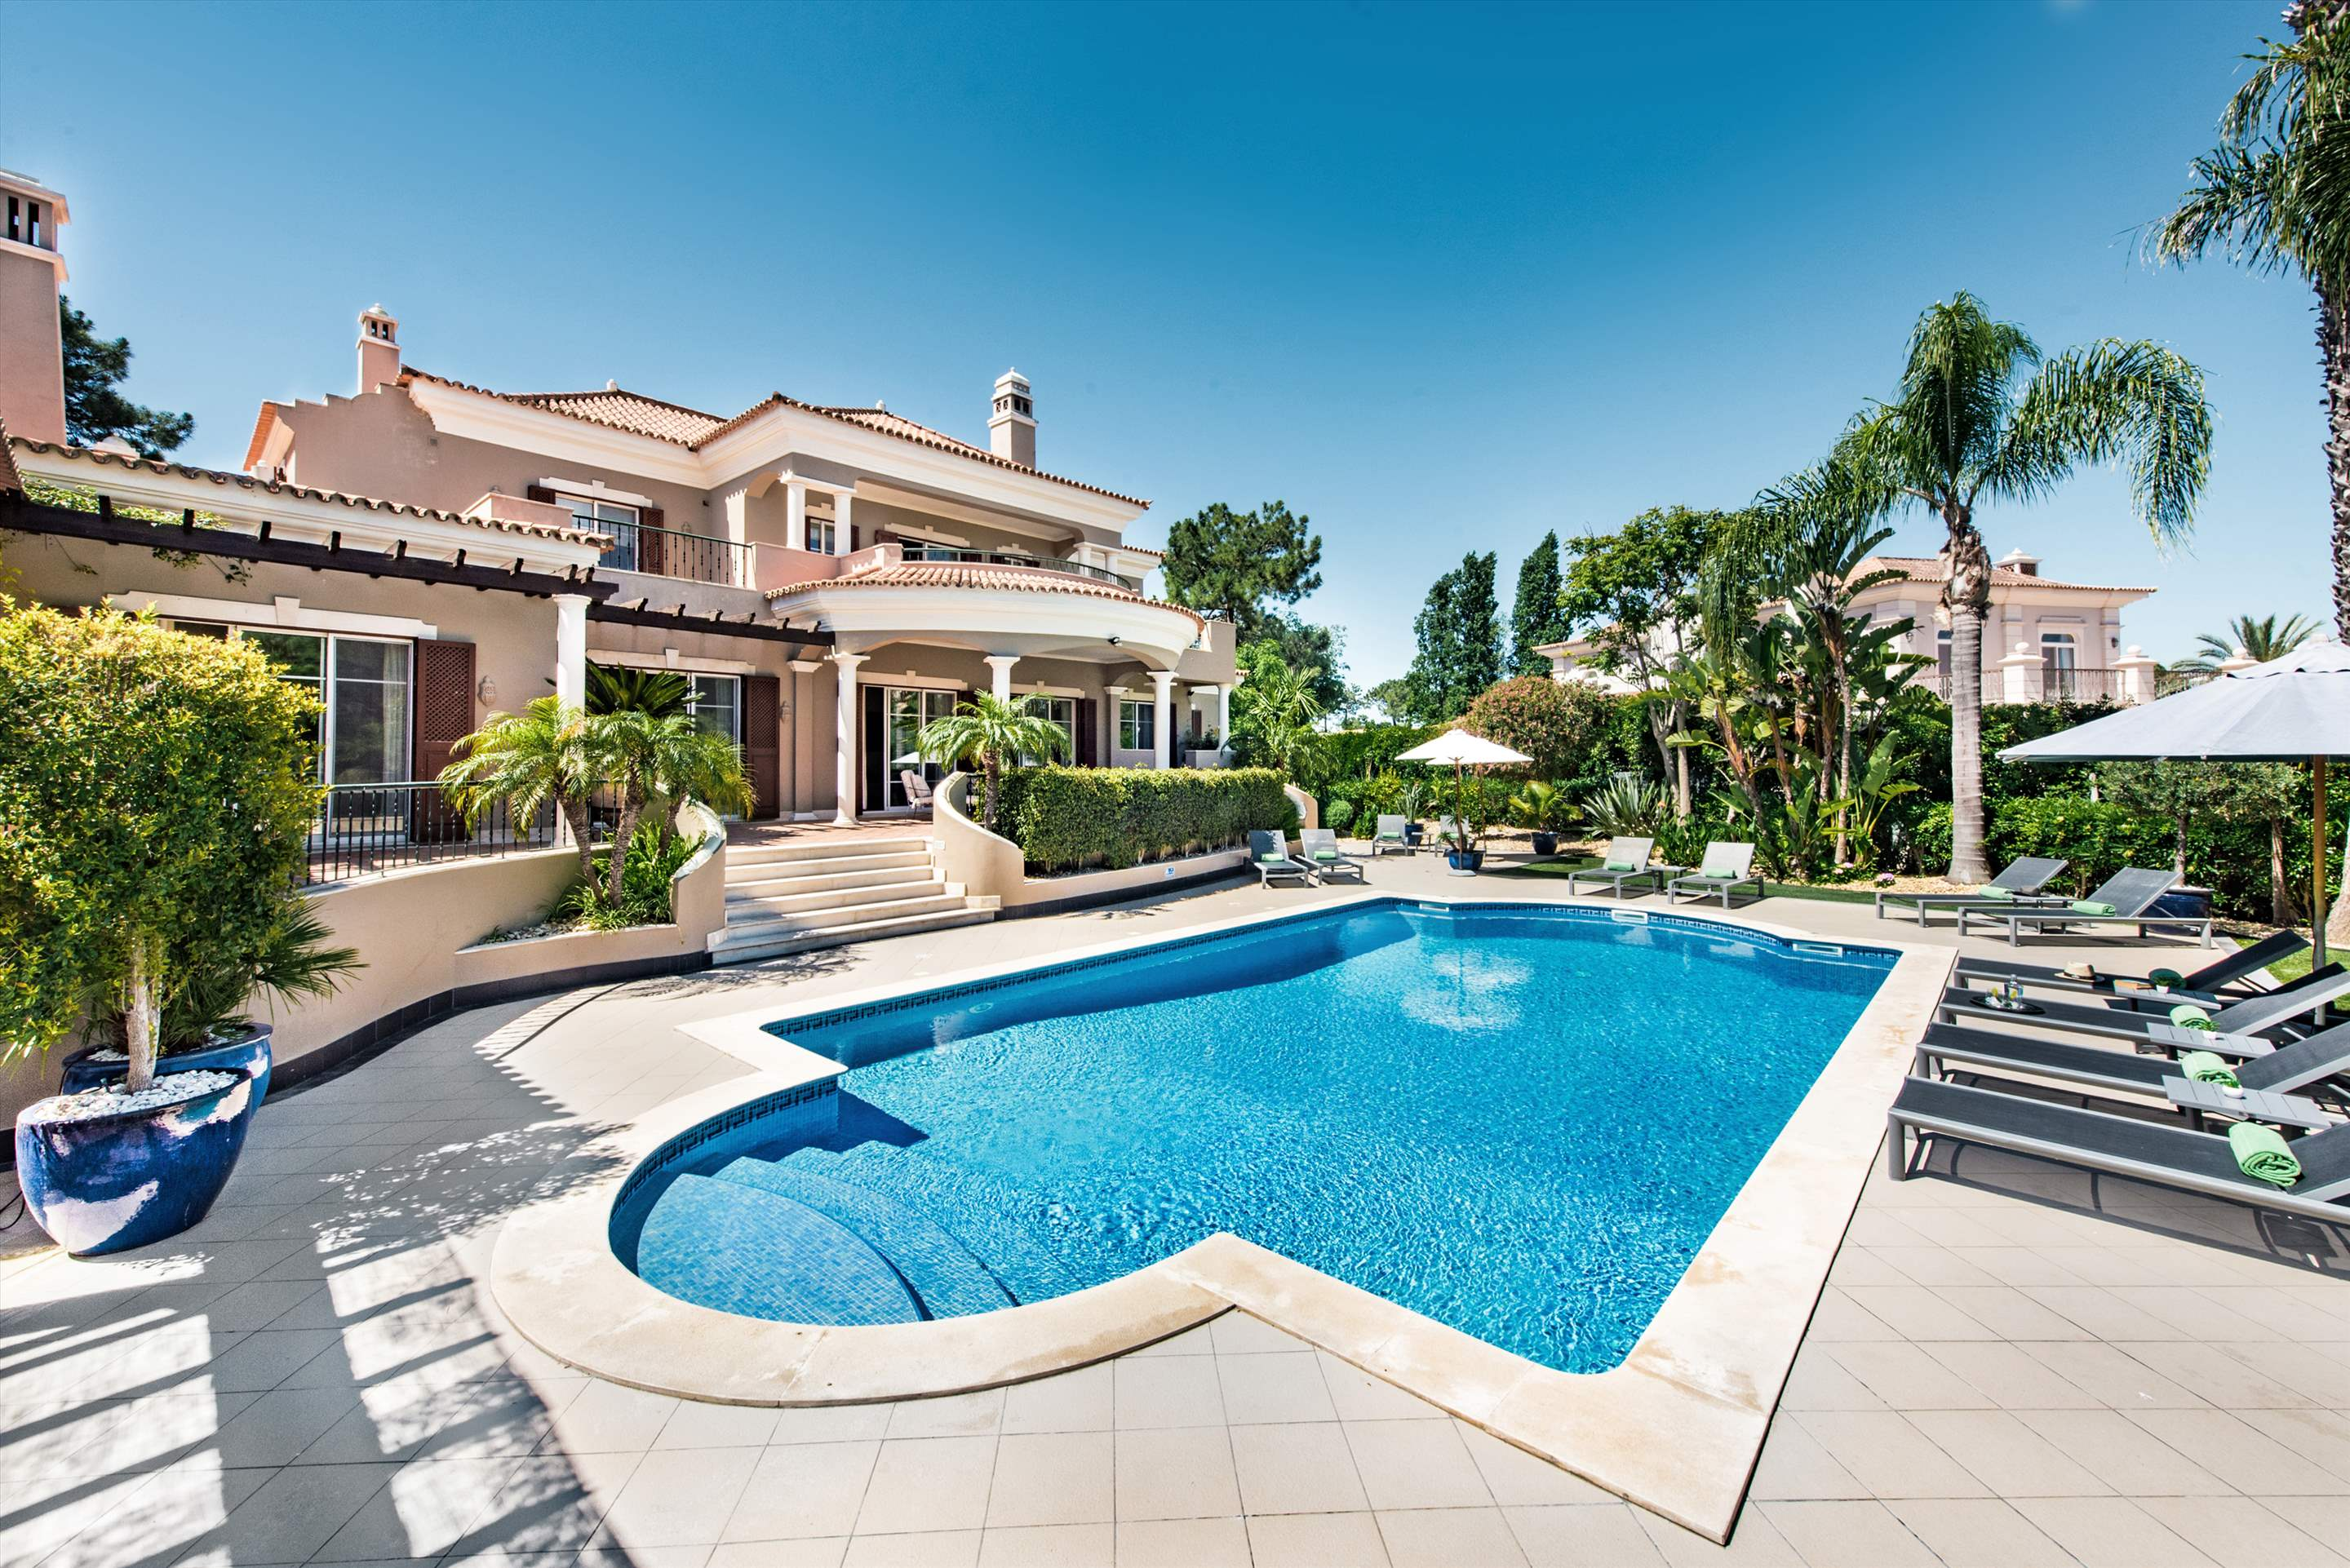 Villa San Lorenzo, 6 bedroom villa in Quinta do Lago, Algarve